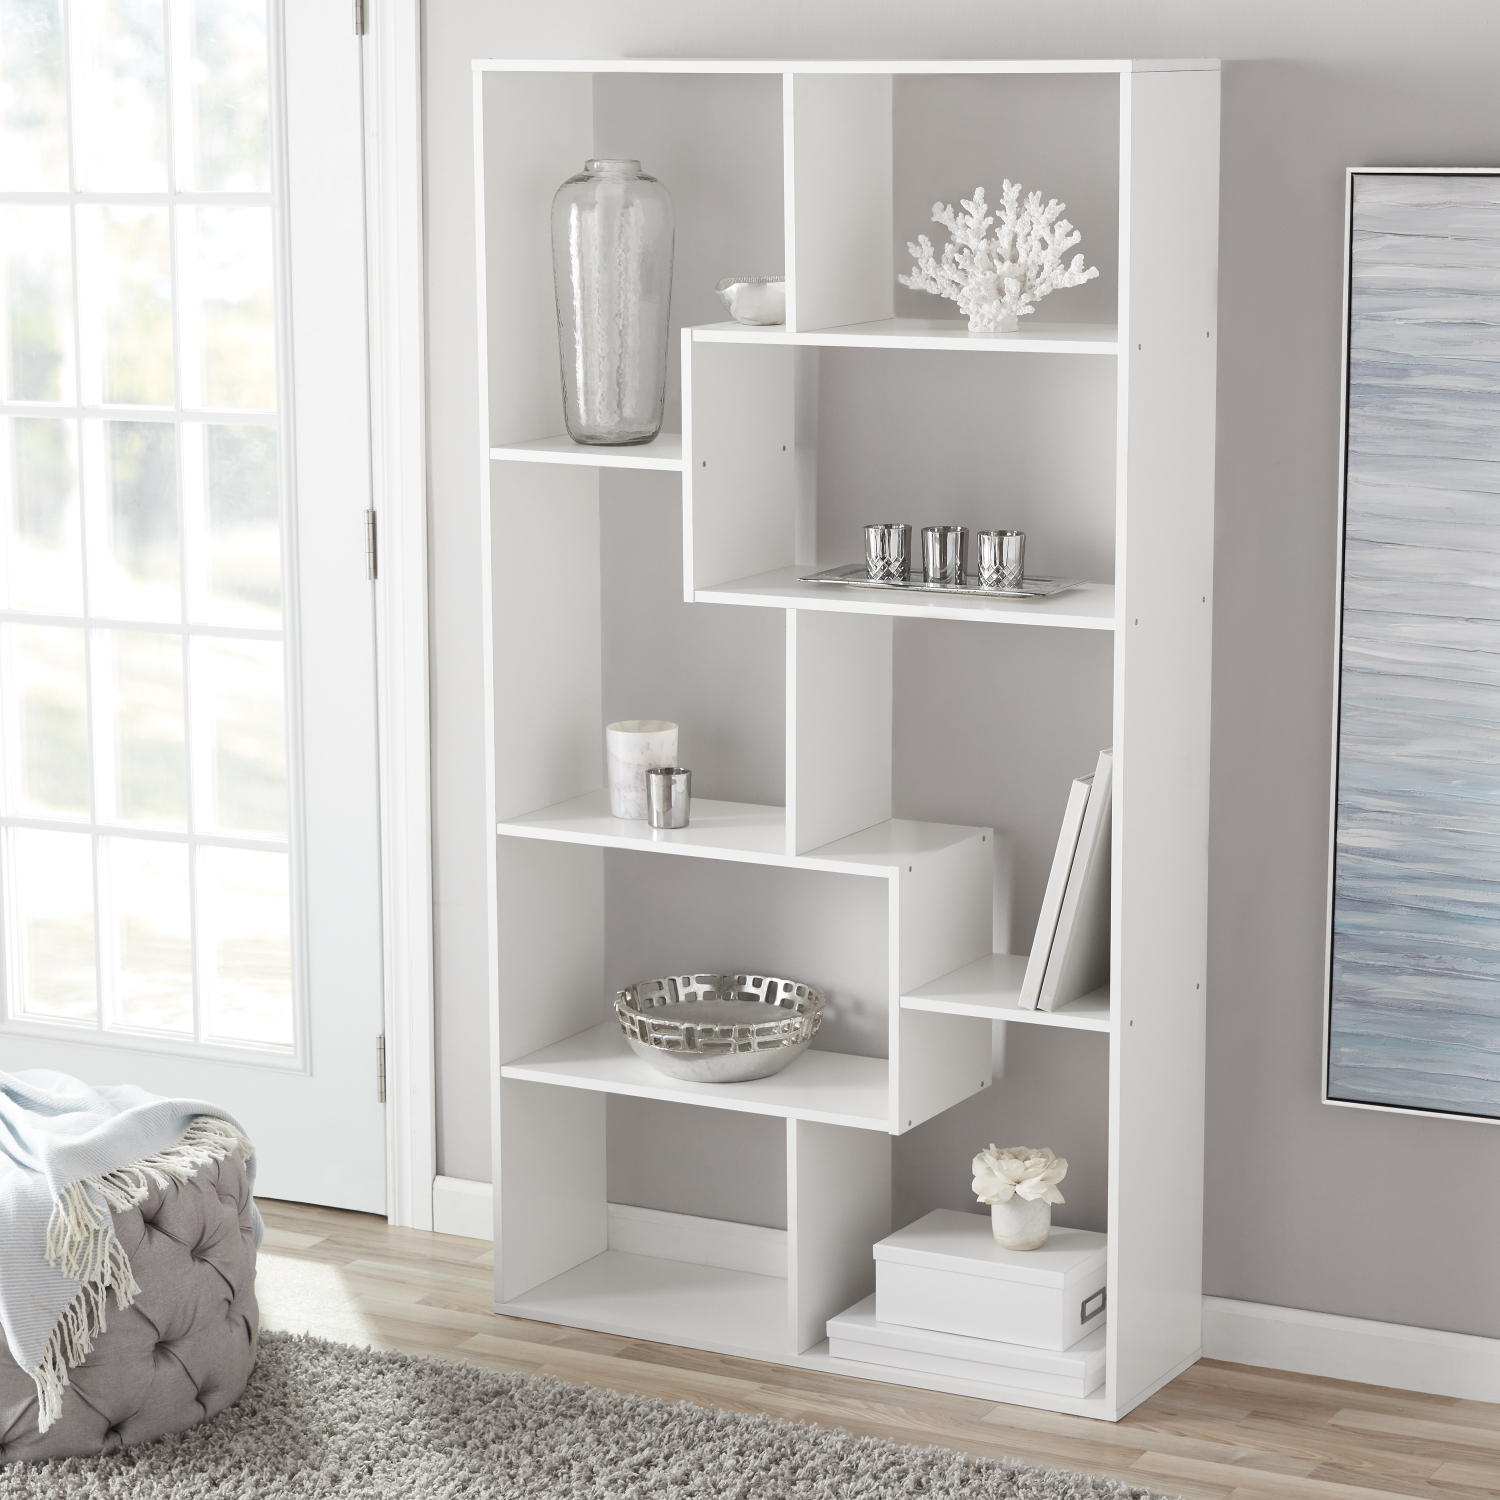 Details About Tall Bookcase Cubby Large Open Bookshelf Modern Cube 8 Shelf Display Decor White